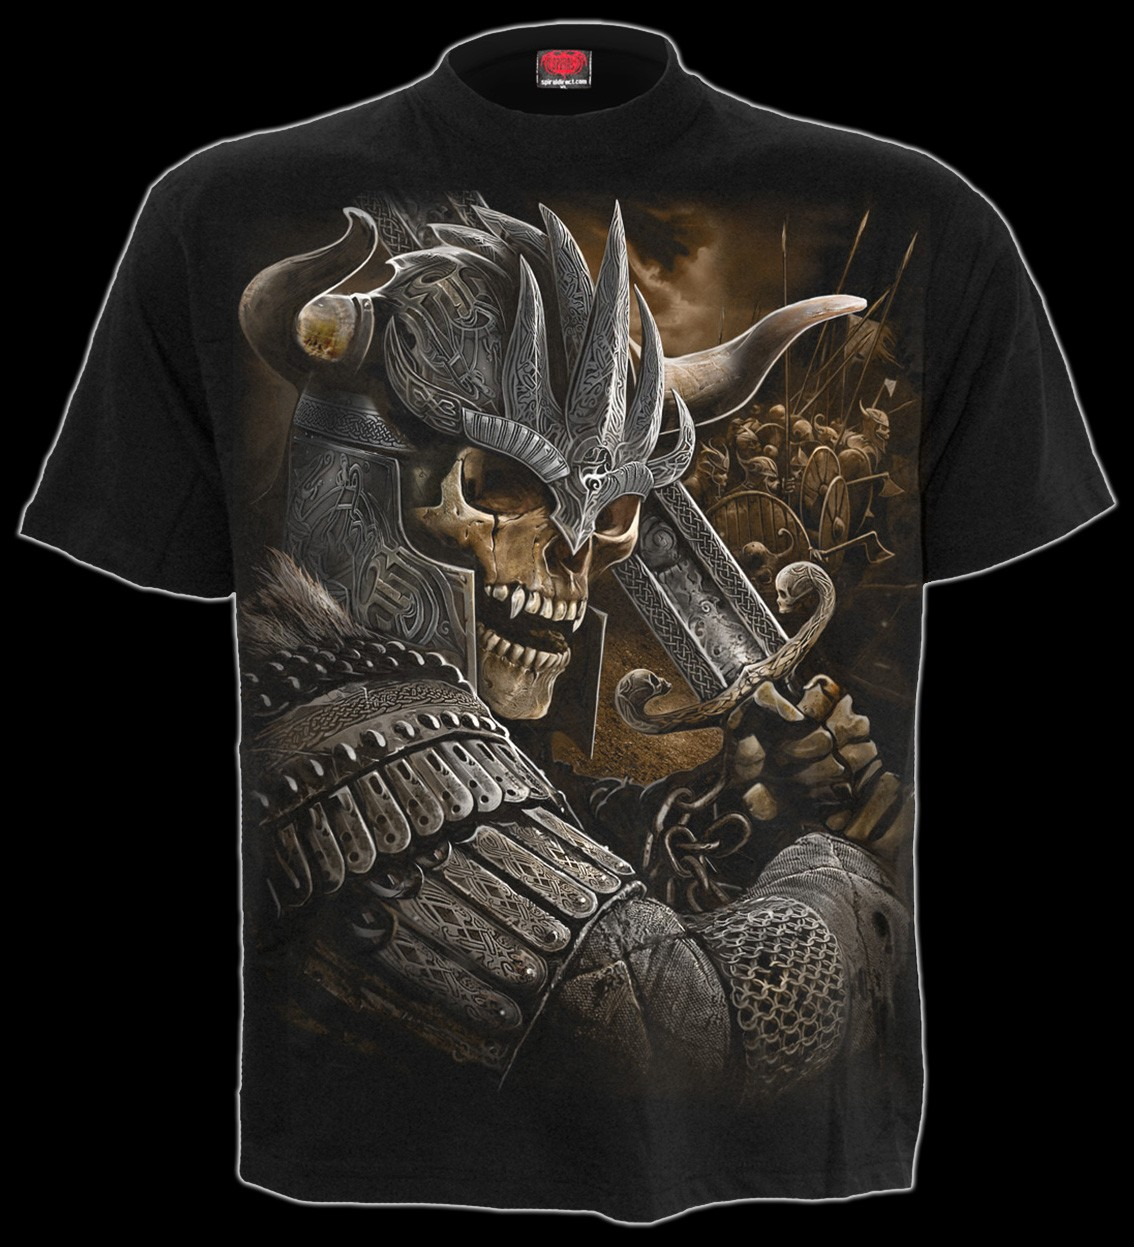 Spiral T-Shirt Skelett Wikinger - Viking Warrior